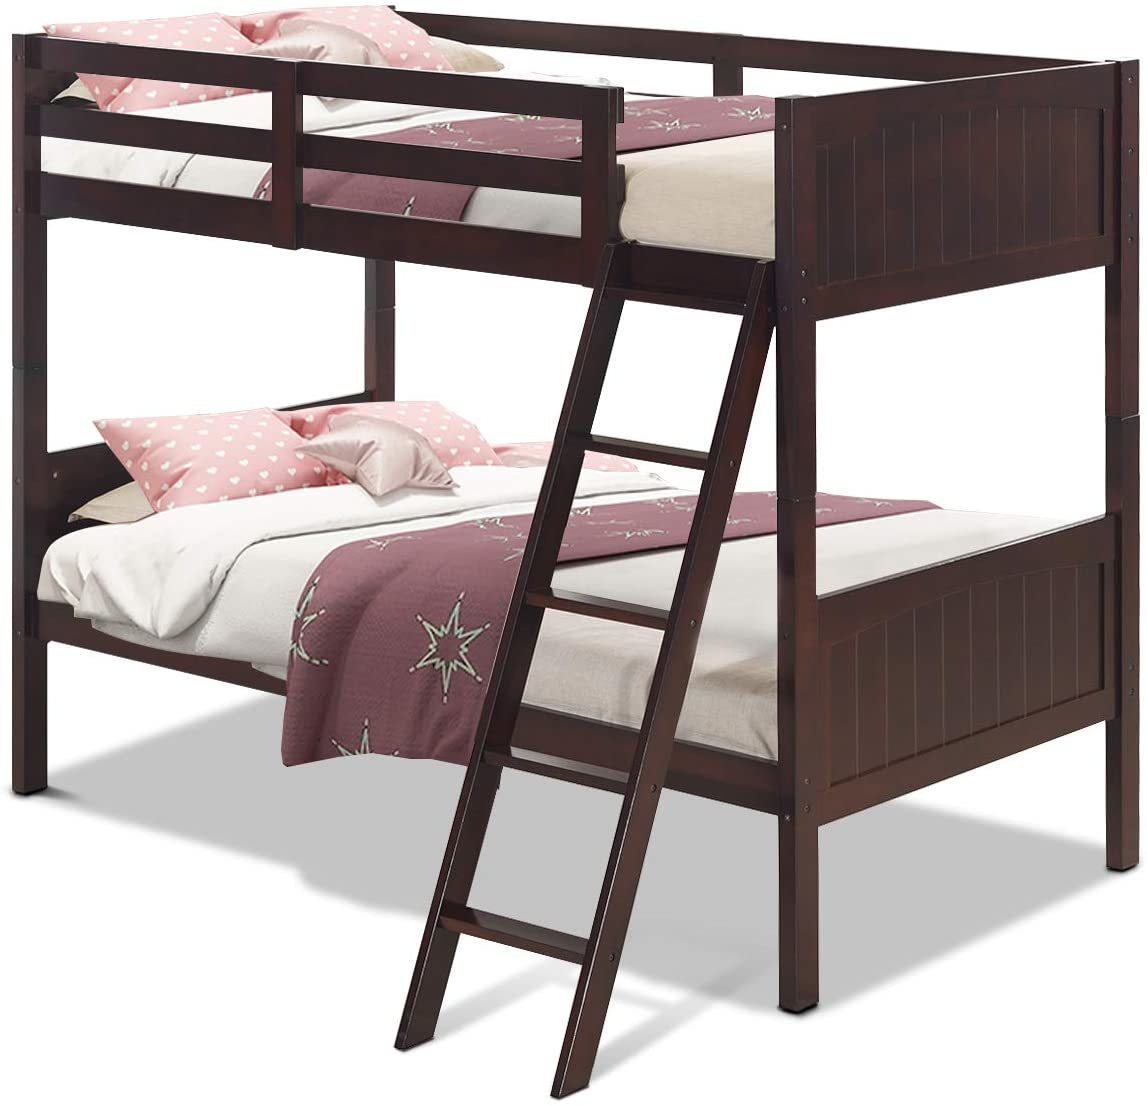 Bunk Beds Under $100 $150 $200 & $300 - Costzon Wooden Convertible Bunk Bed – Twin-over-twin